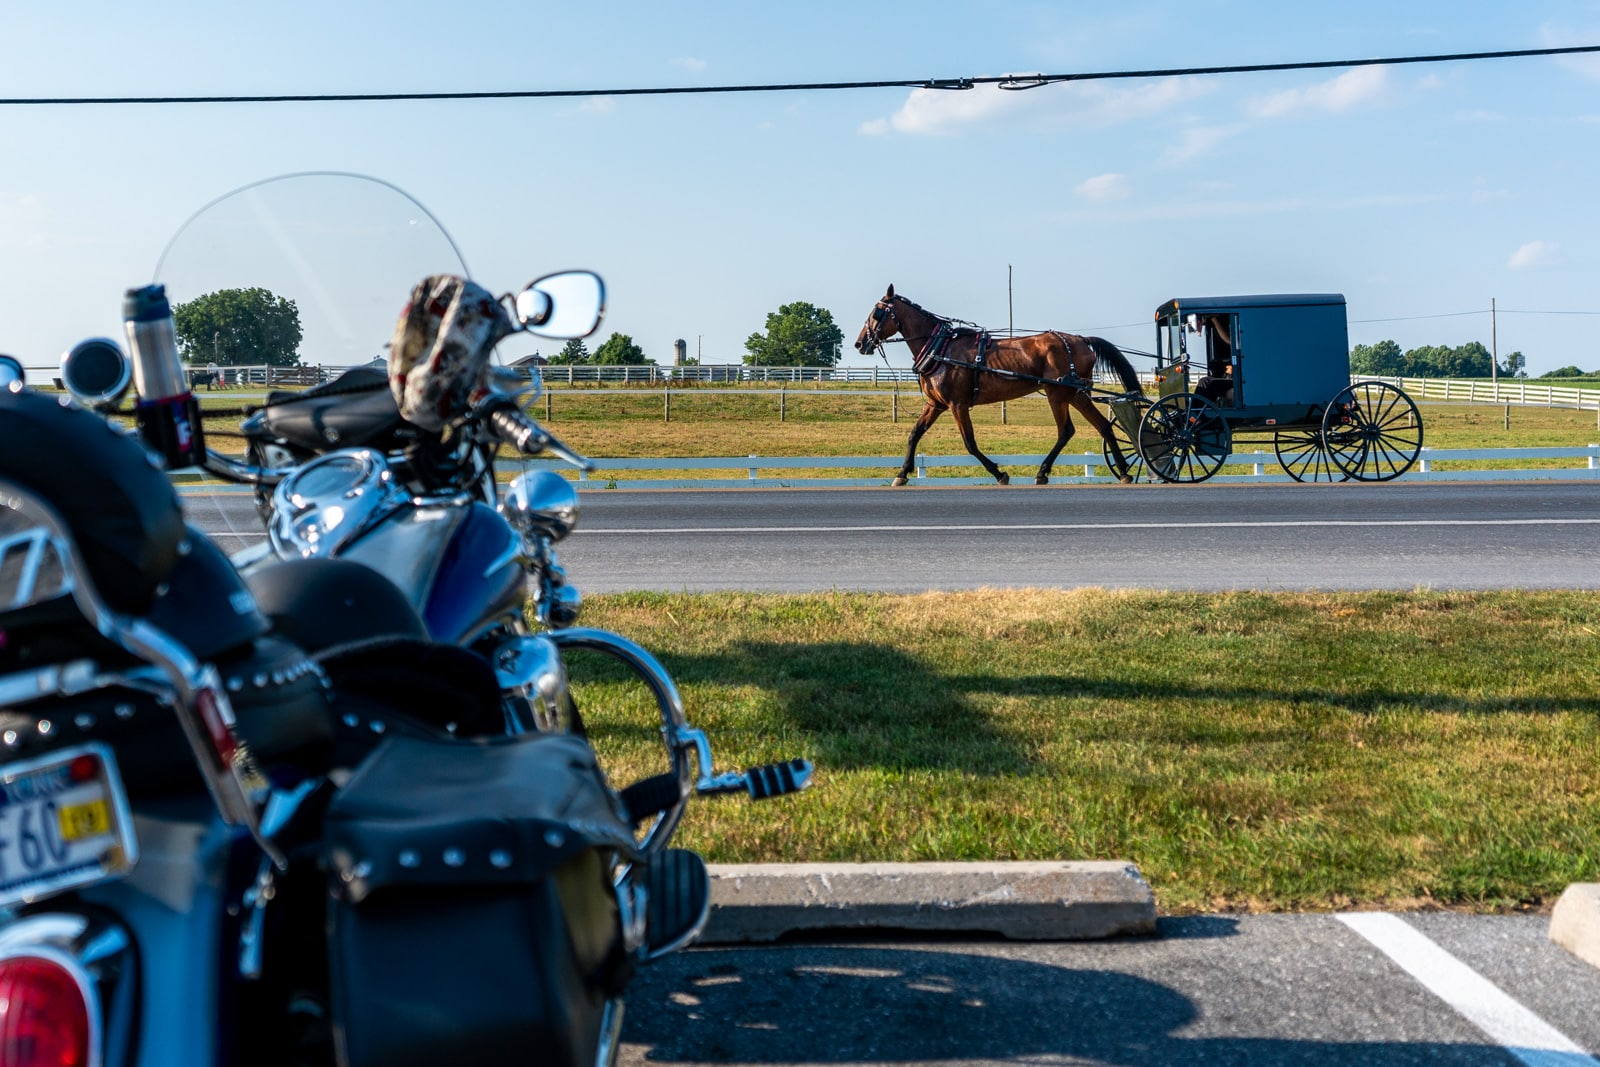 Reverse culture shock from long-term travel - Amish horse cart driving past a motorbike - Lost With Purpose travel blog